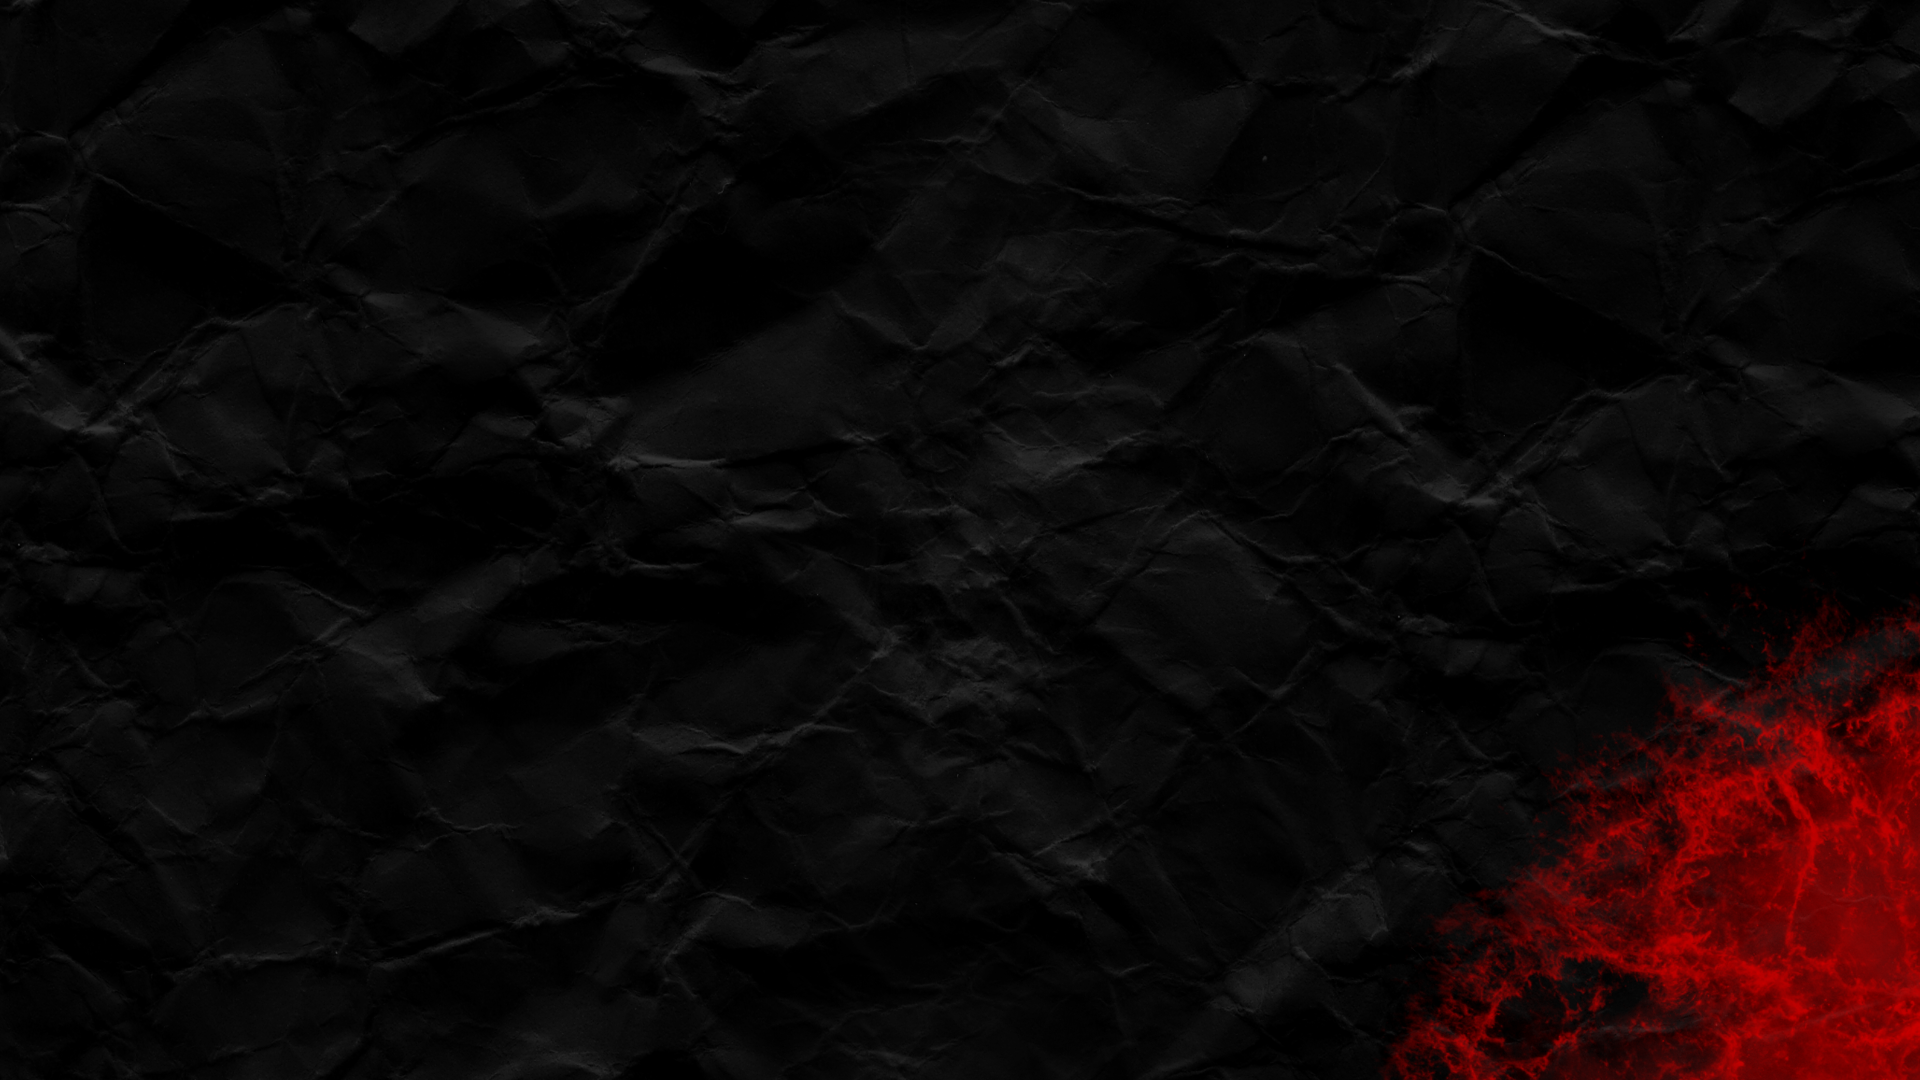 Black And Red Desktop Backgrounds Hd Wallpaper